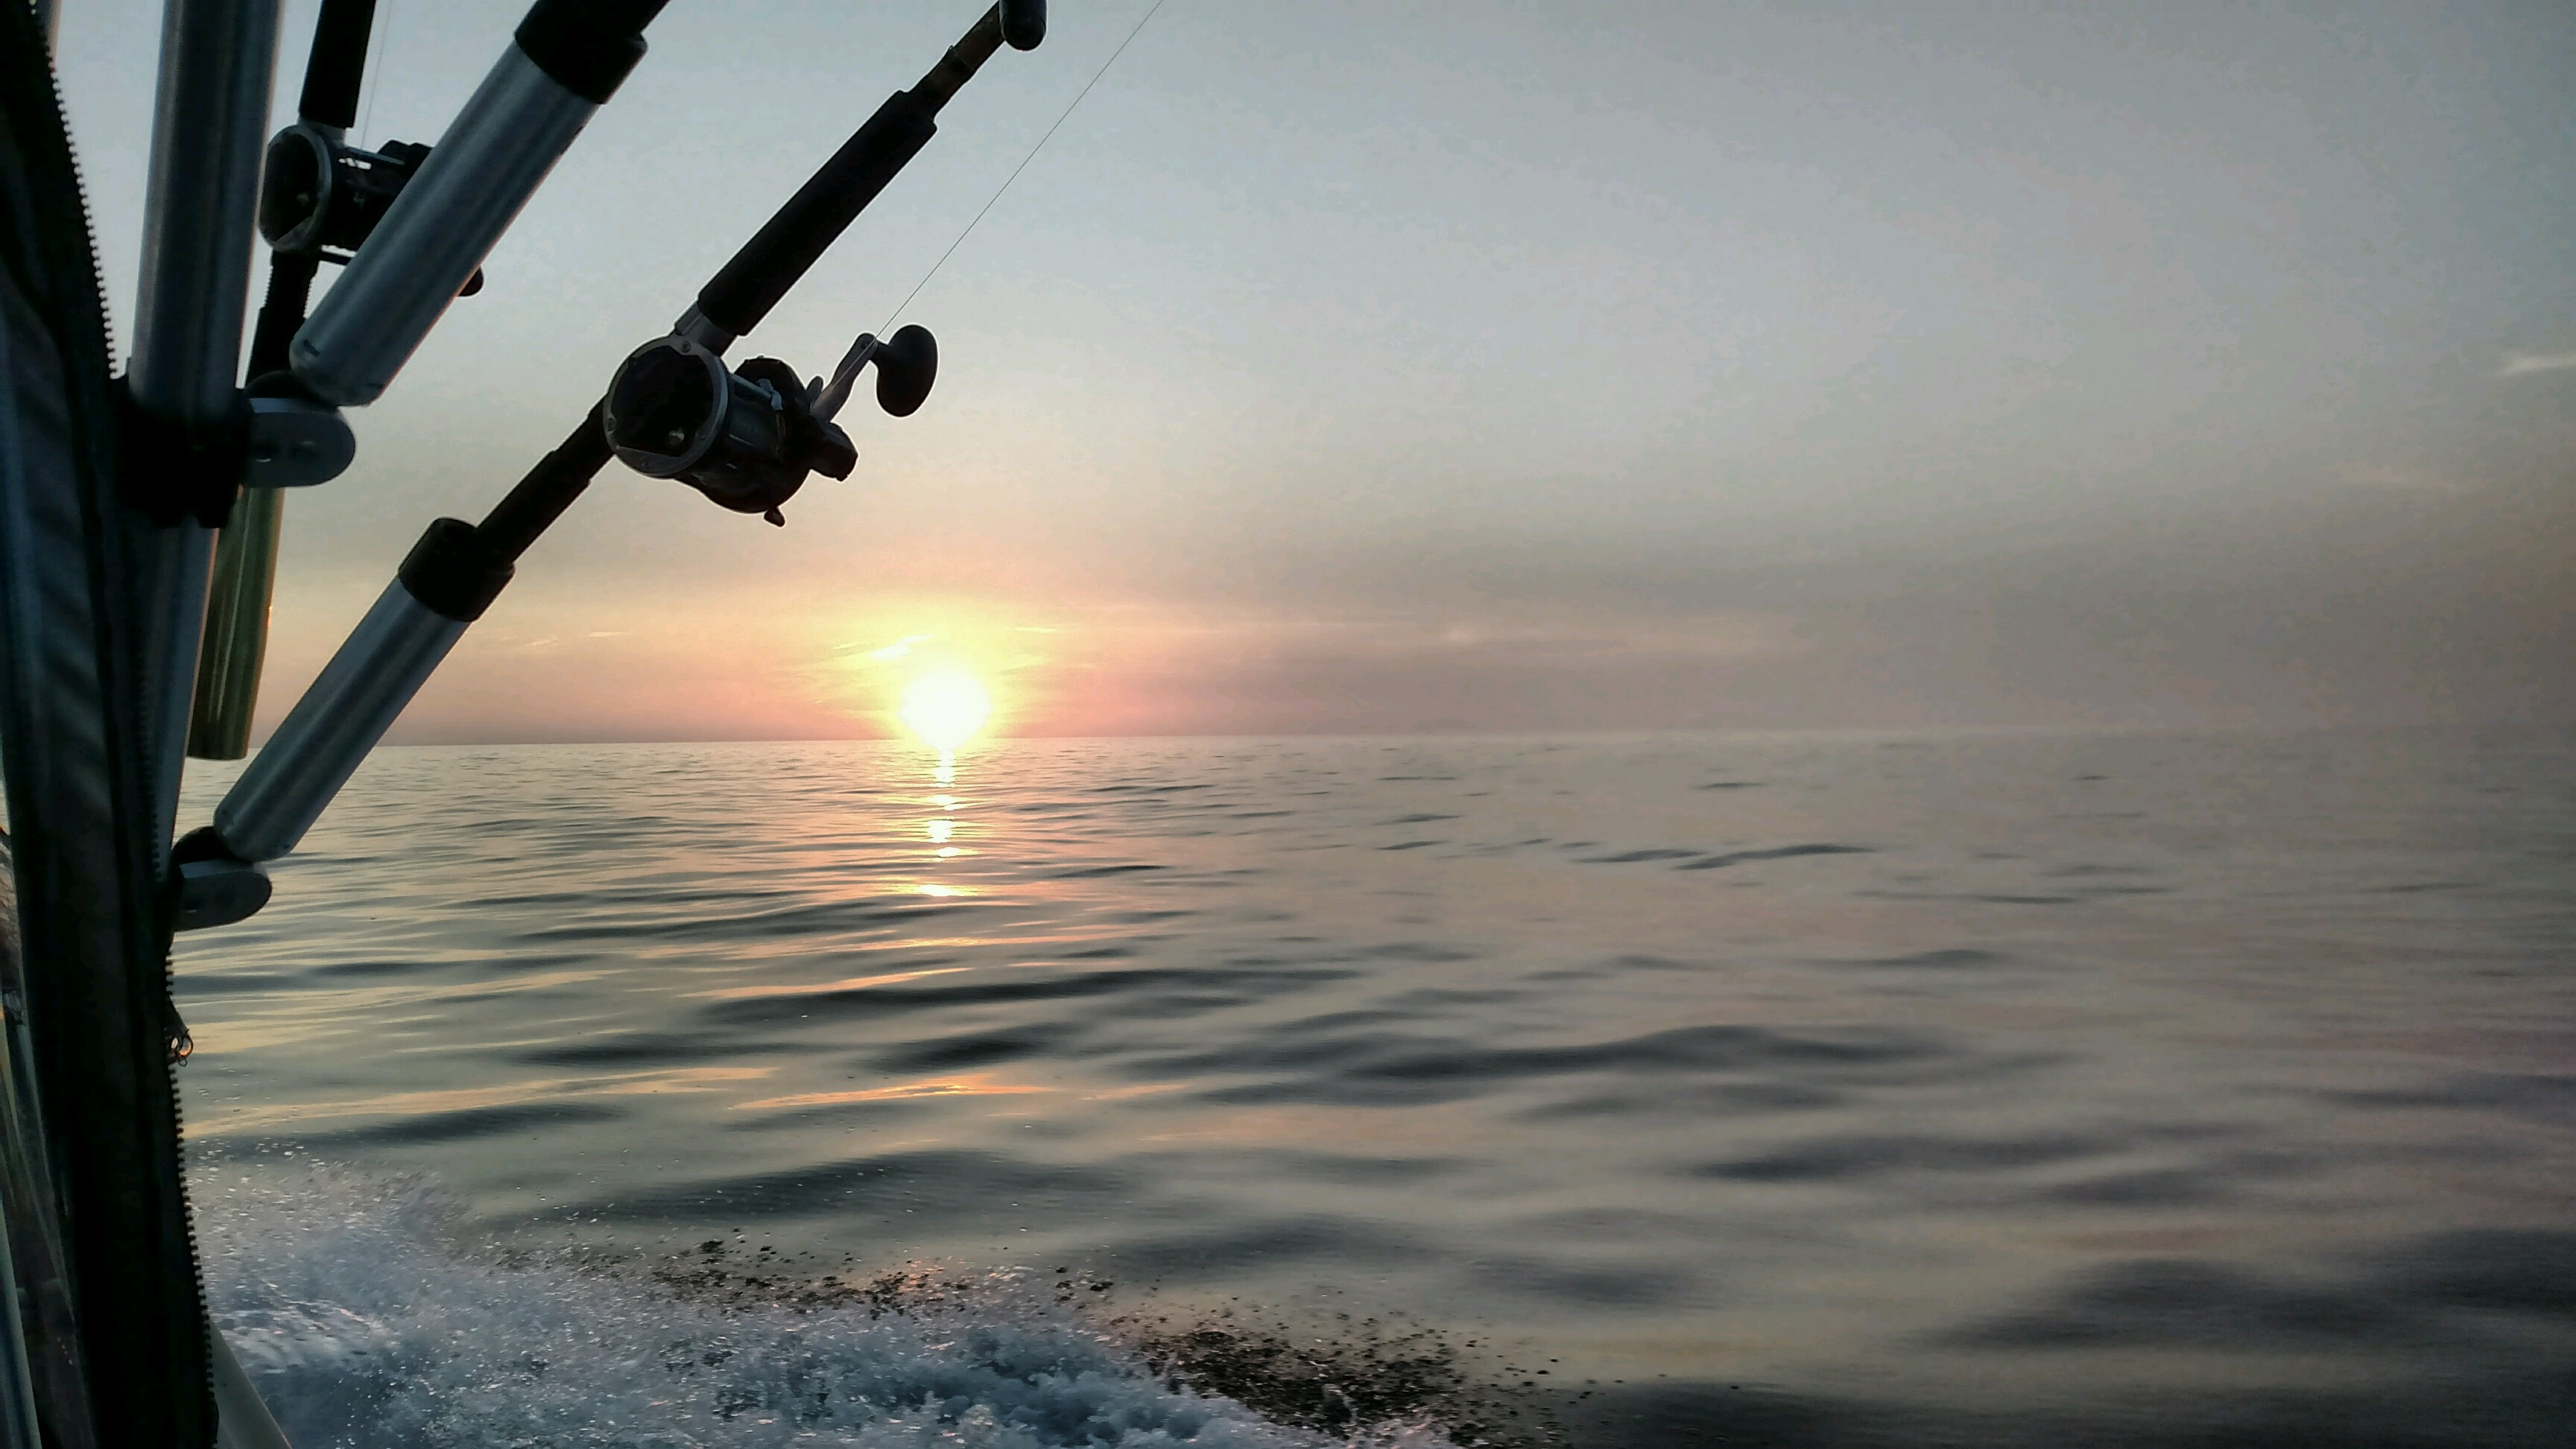 Lake Michigan Salmon Fishing Charters, Slam Dunk Sport Fishing Charters LLC, Kewaunee Wisconsin